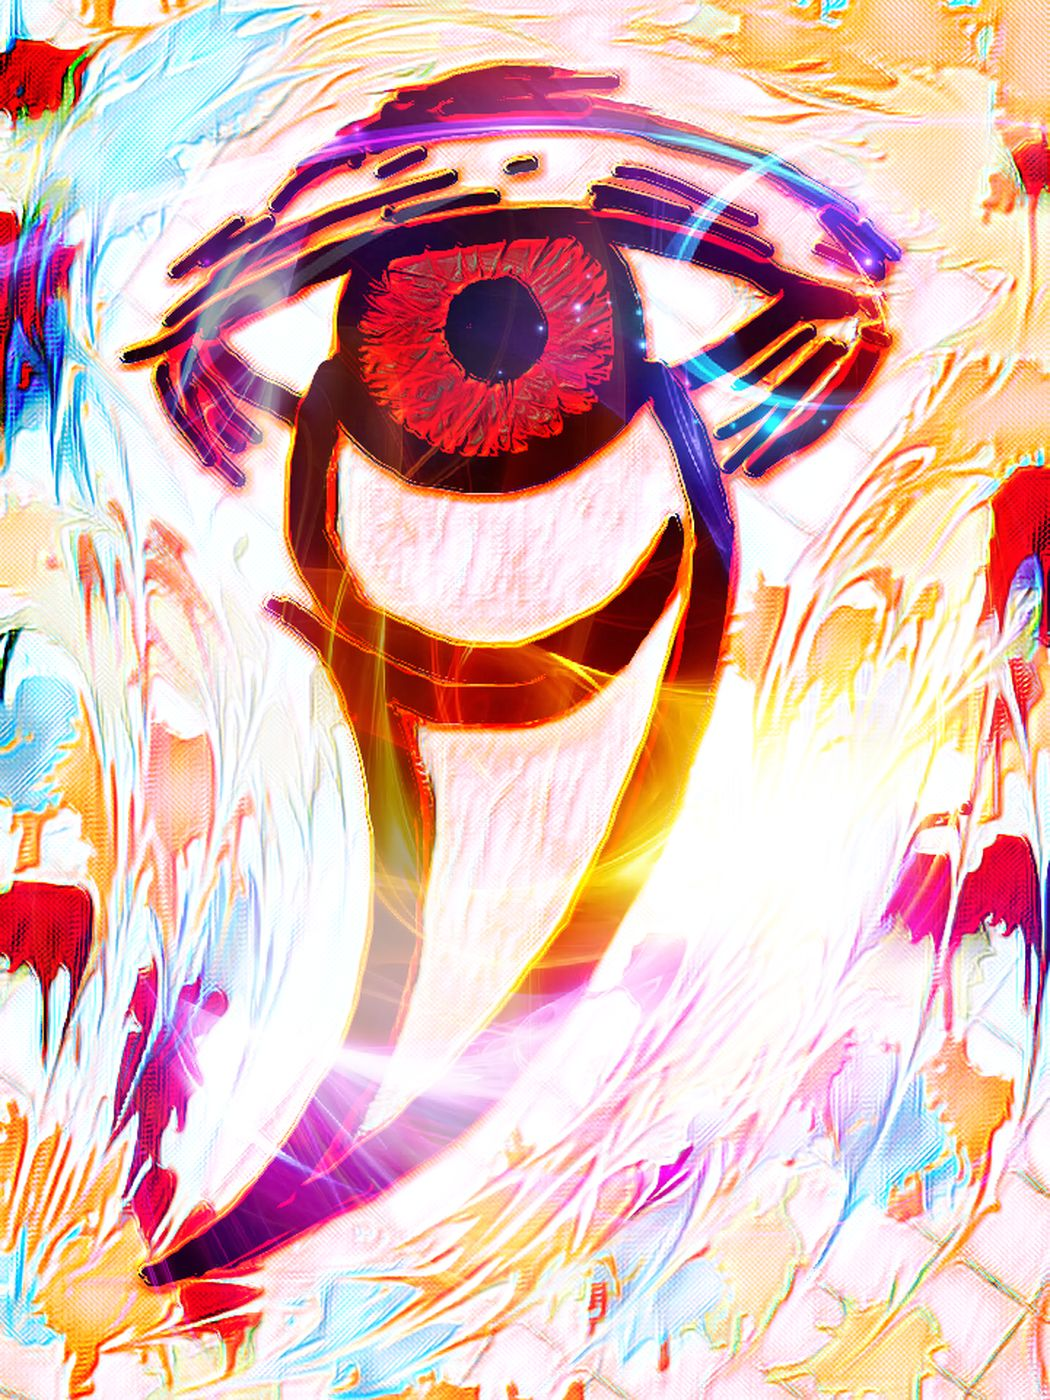 Art Multi Colored Abstract Pattern No People Painted Image Love Beauty Streetphotography Dreamer Effects & Filters Thinking Plan A People Human Face Speed Lostloves Men She And Me ❤️ Headshot Futuristic Long Exposure Close-up Watercolor Painting Outdoors Day